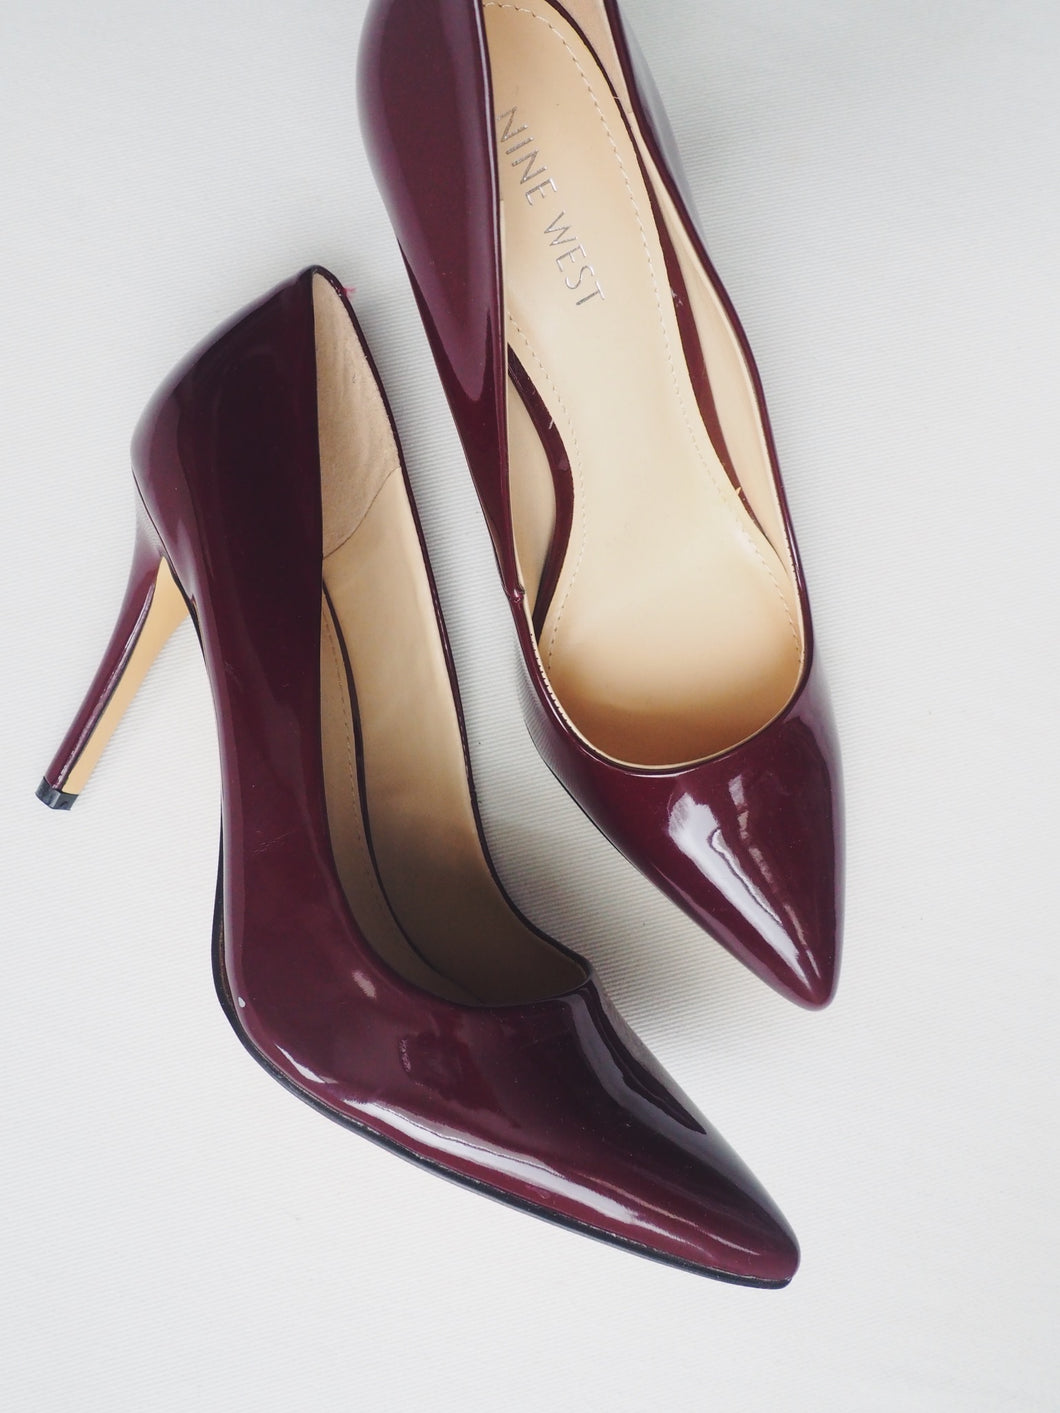 Nine West Burgundy Pumps